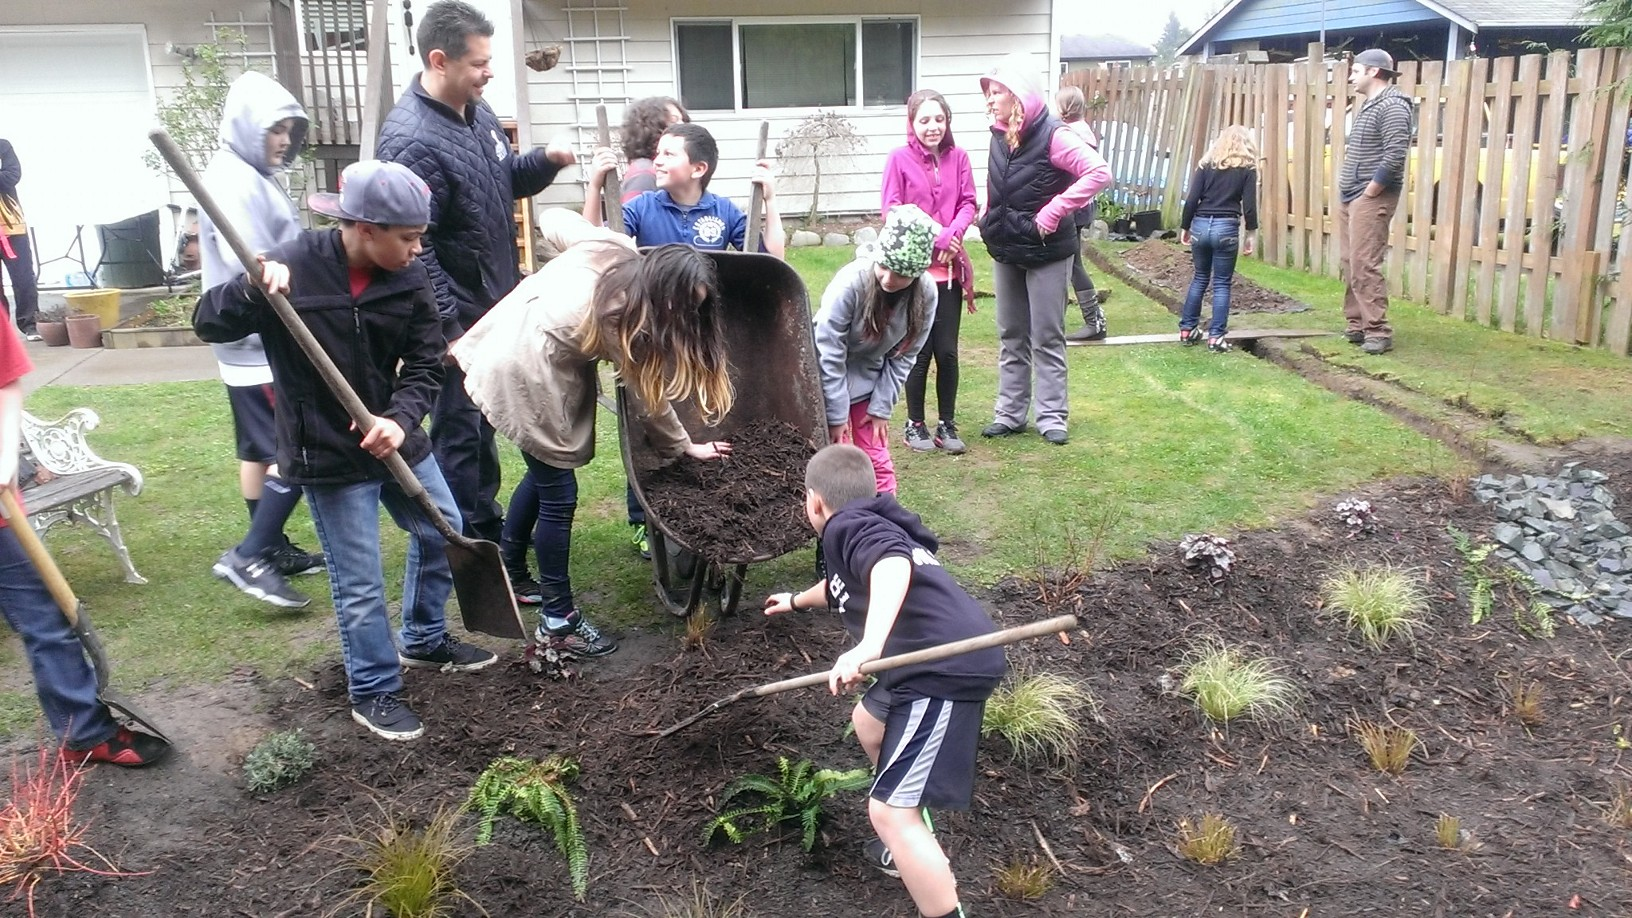 Marshall Elementary students were invited to come help plant in the new rain garden. Photo by Valerie Streeter